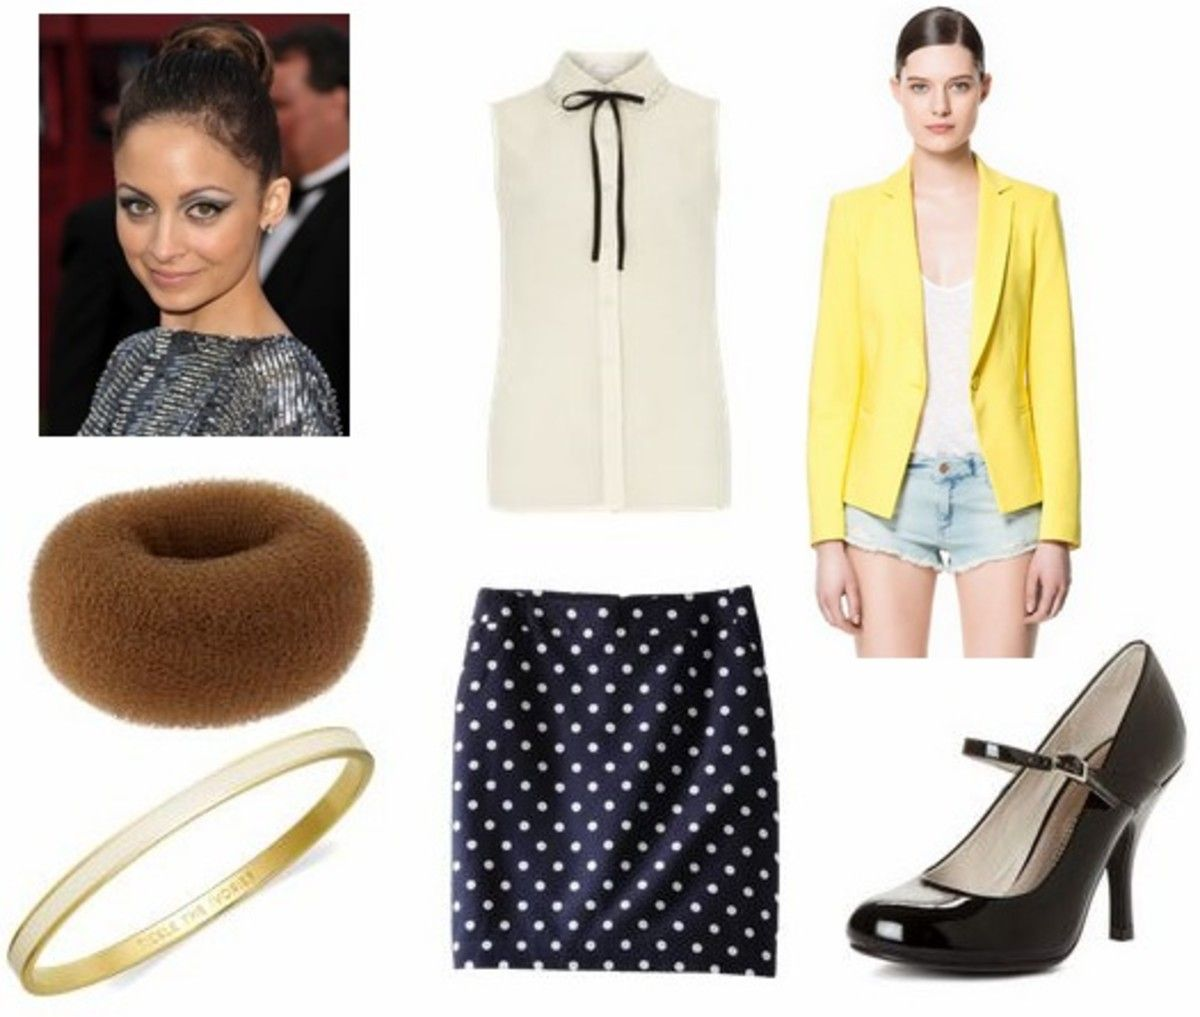 Inspiration Inspirationmovie fashion inspired by the help